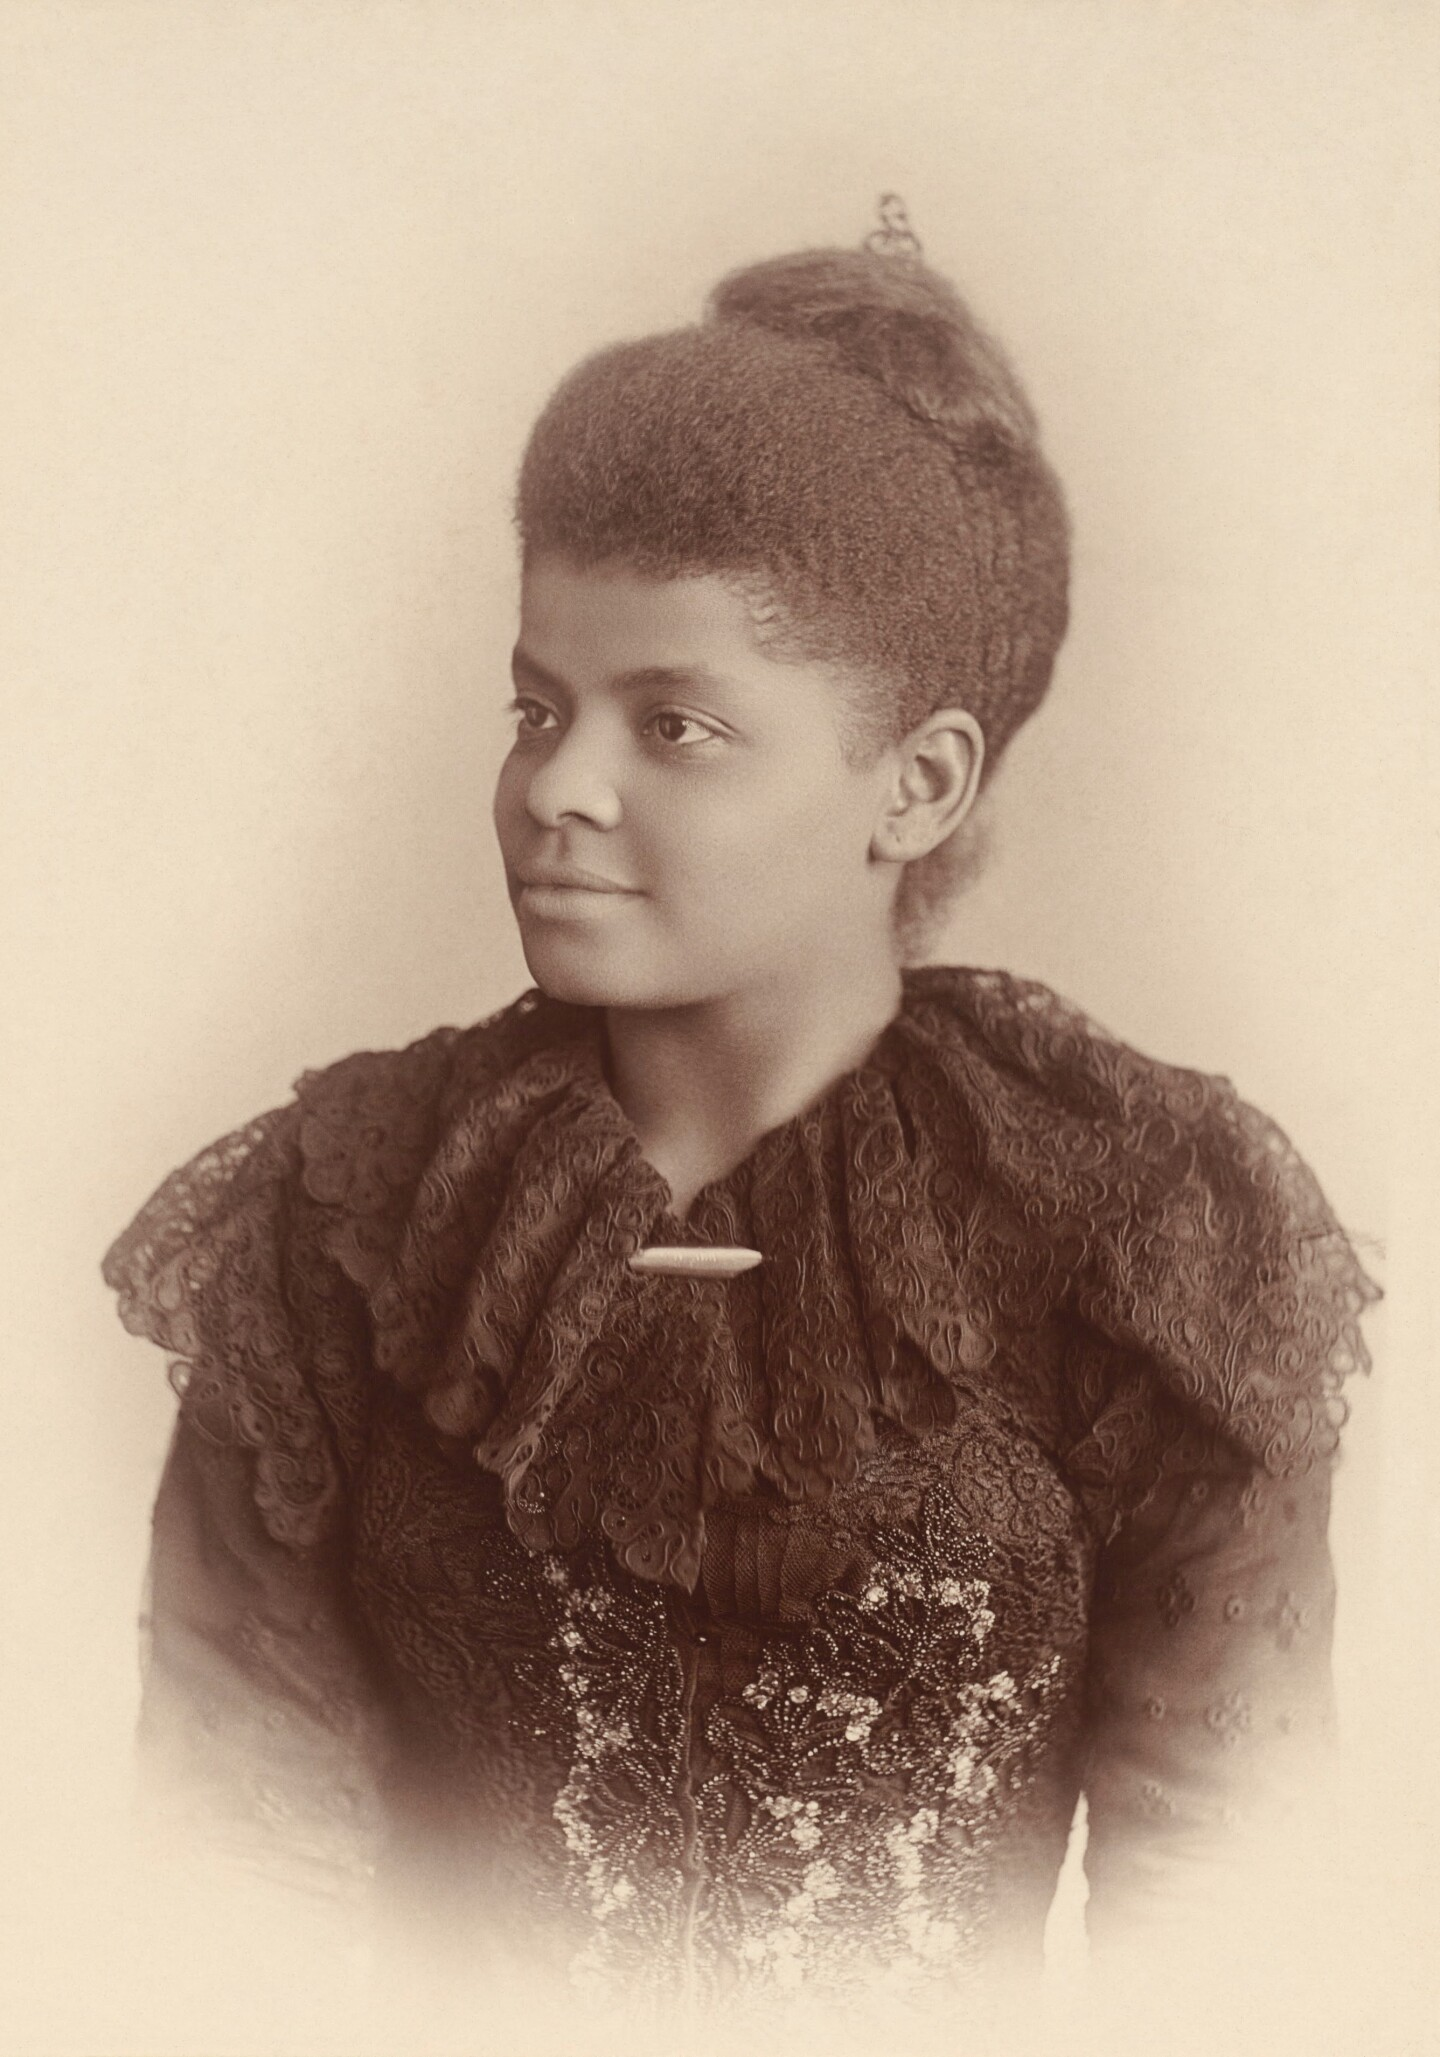 A sepia portrait of Ida B. Wells where she is wearing a piece of clothing with a frilly neckline. Her hair sits atop her head.